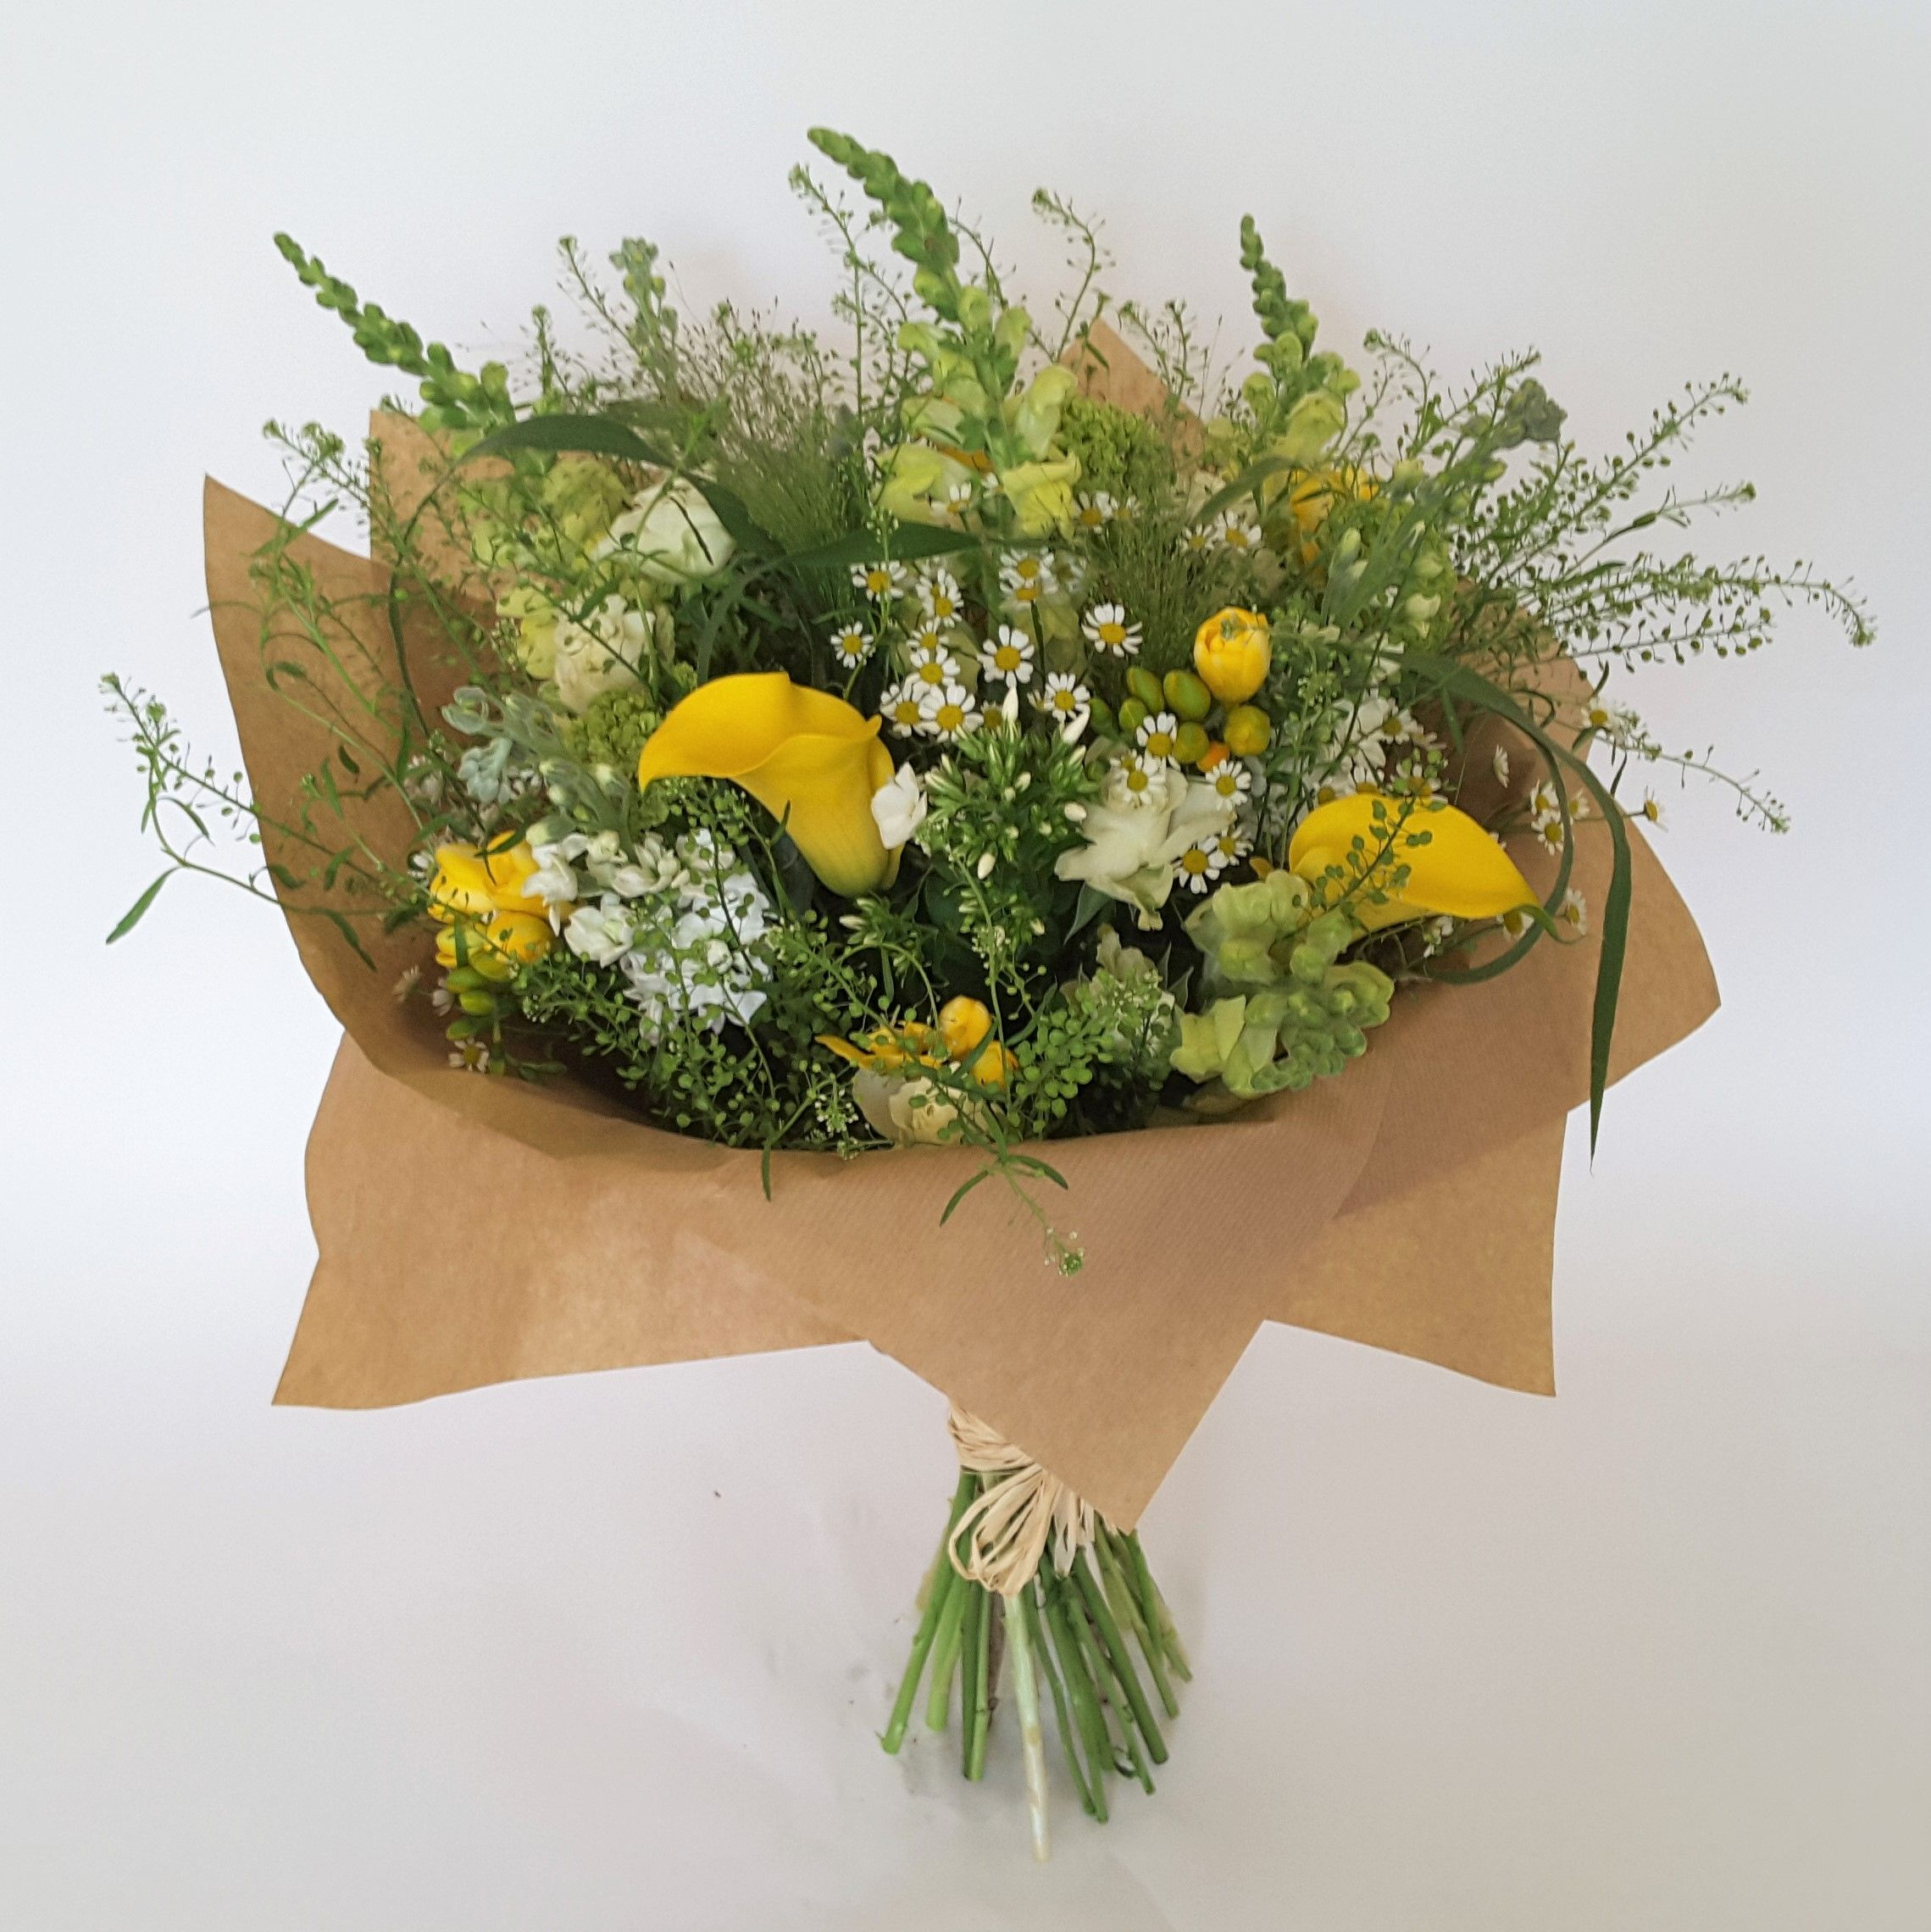 A stunning handtied bouquet in white and yellow flowers